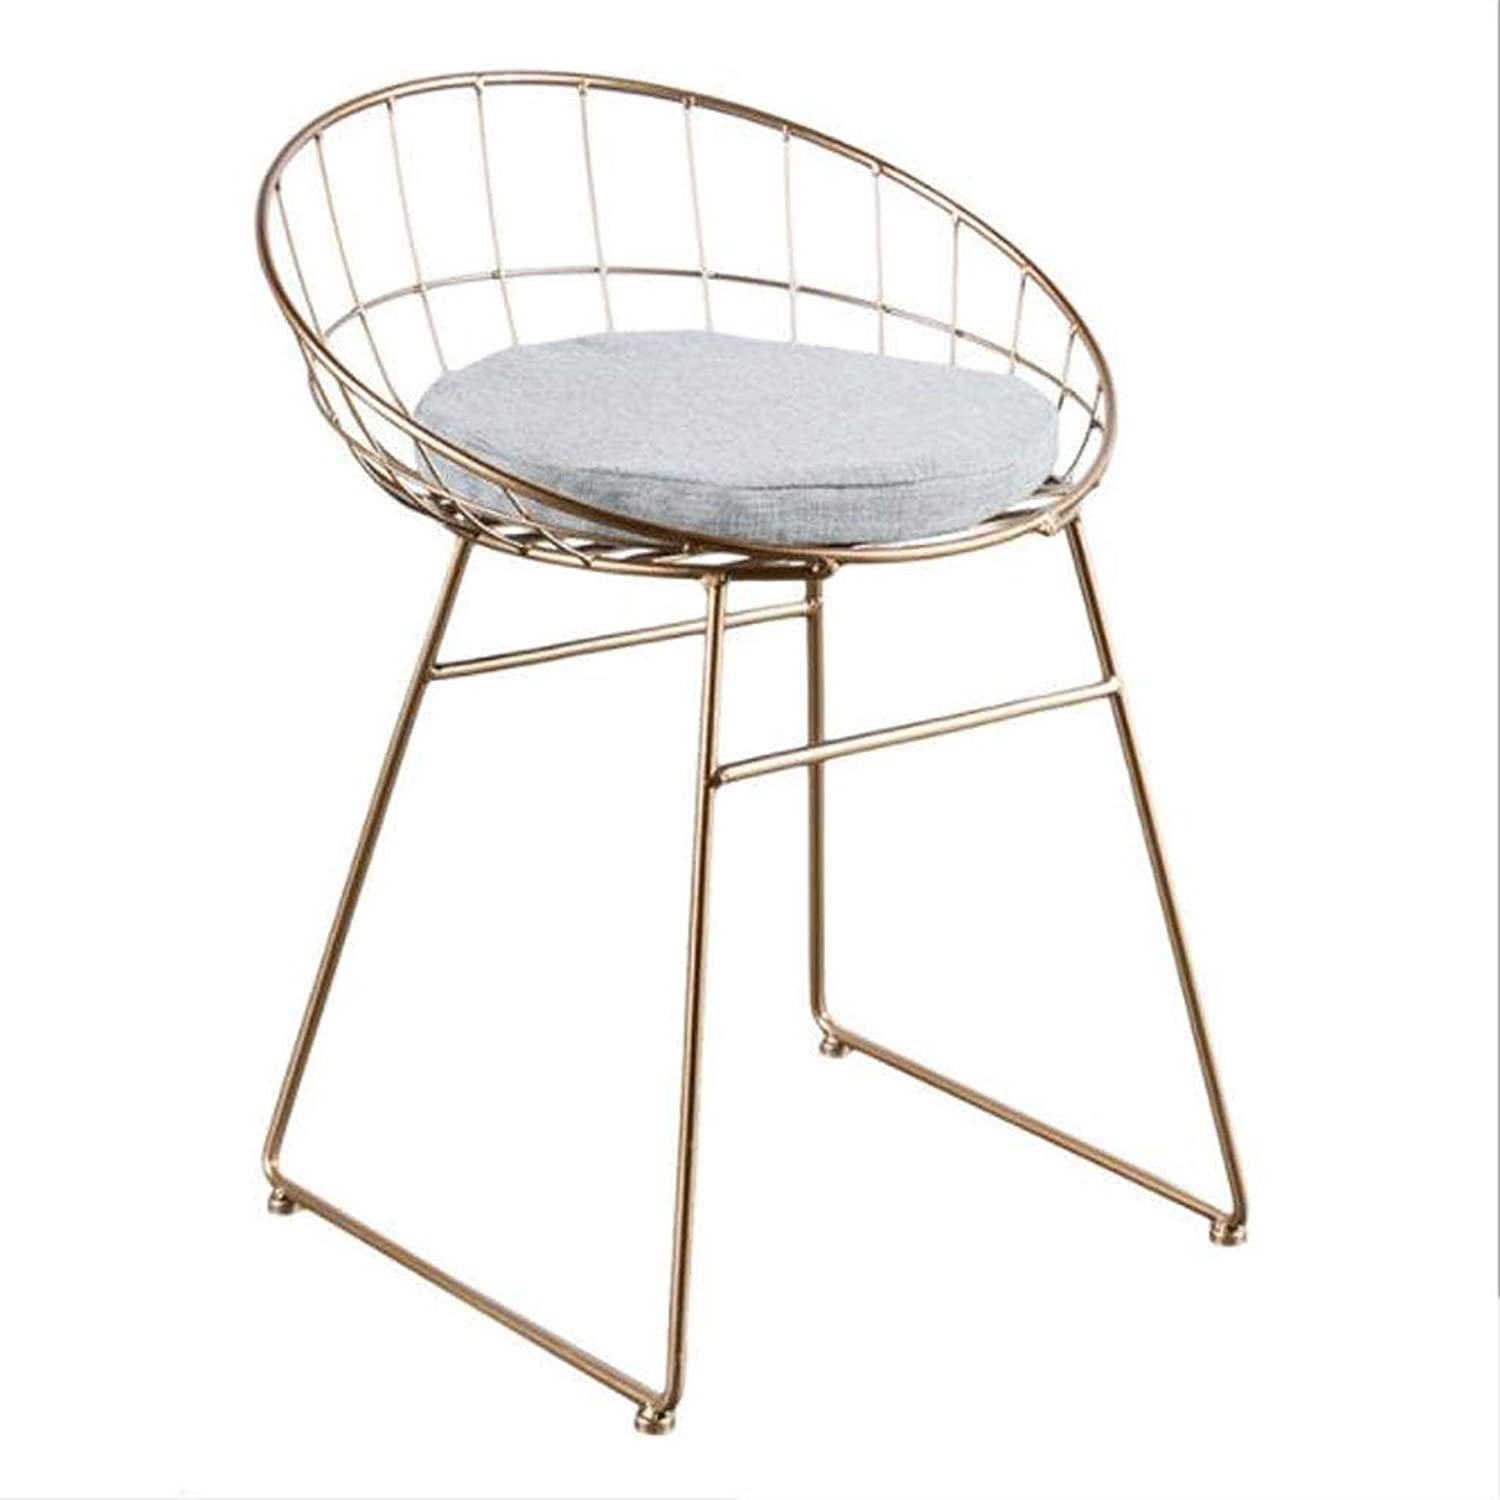 Bar stools Leisure Bar Stool High Stool Iron Vine Cushion Cushion Height 45cm, 75cm, Black and White gold Optional Height Chair (color   gold, Size   45cm)